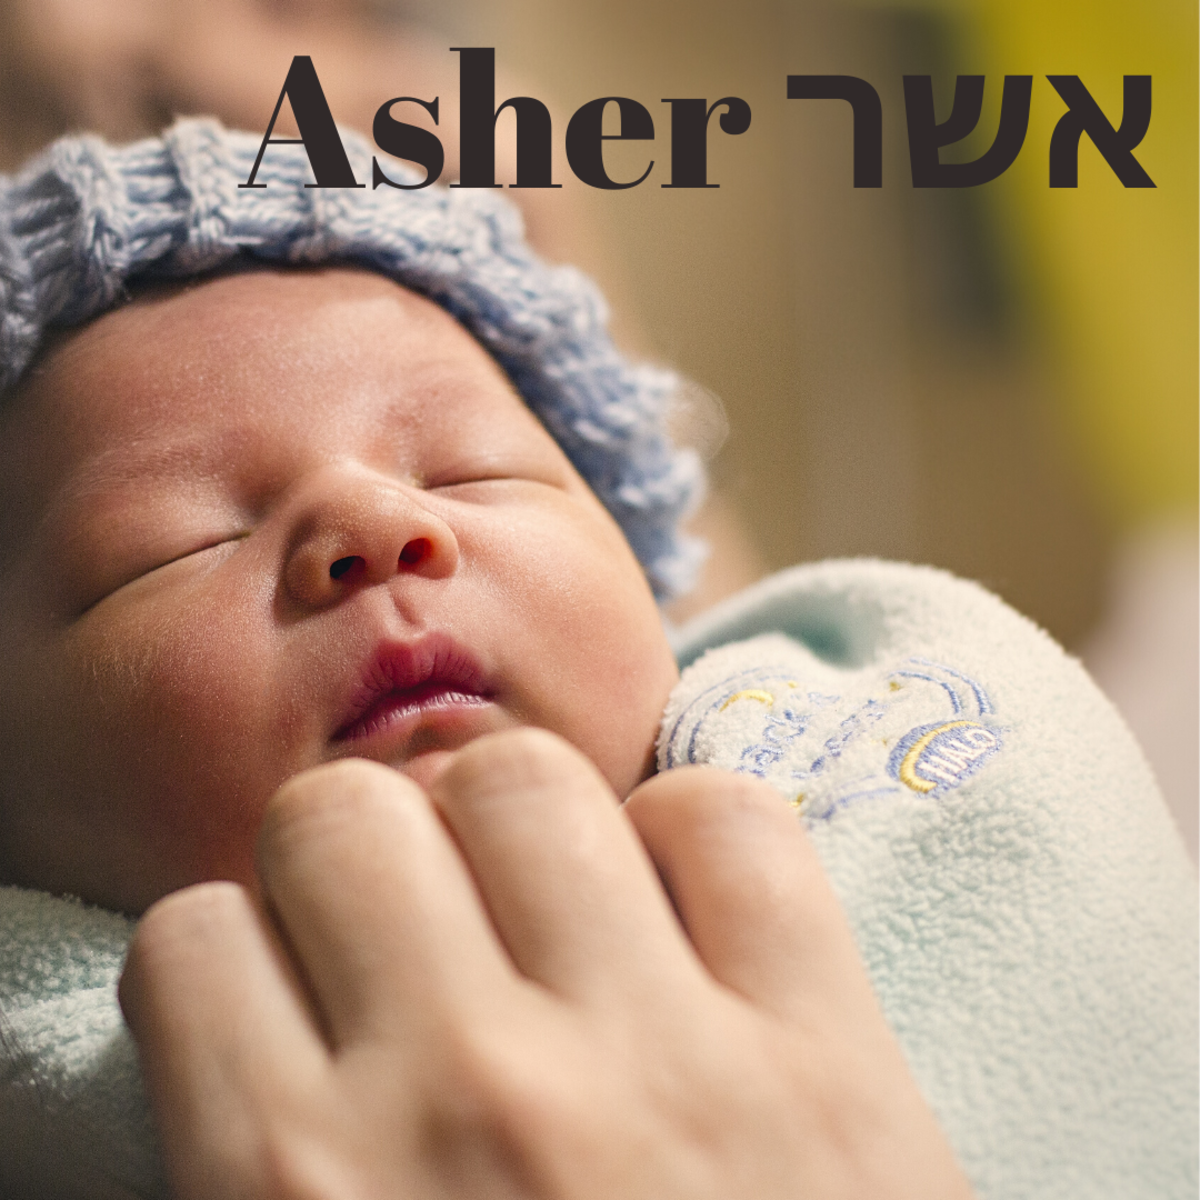 Asher אשר